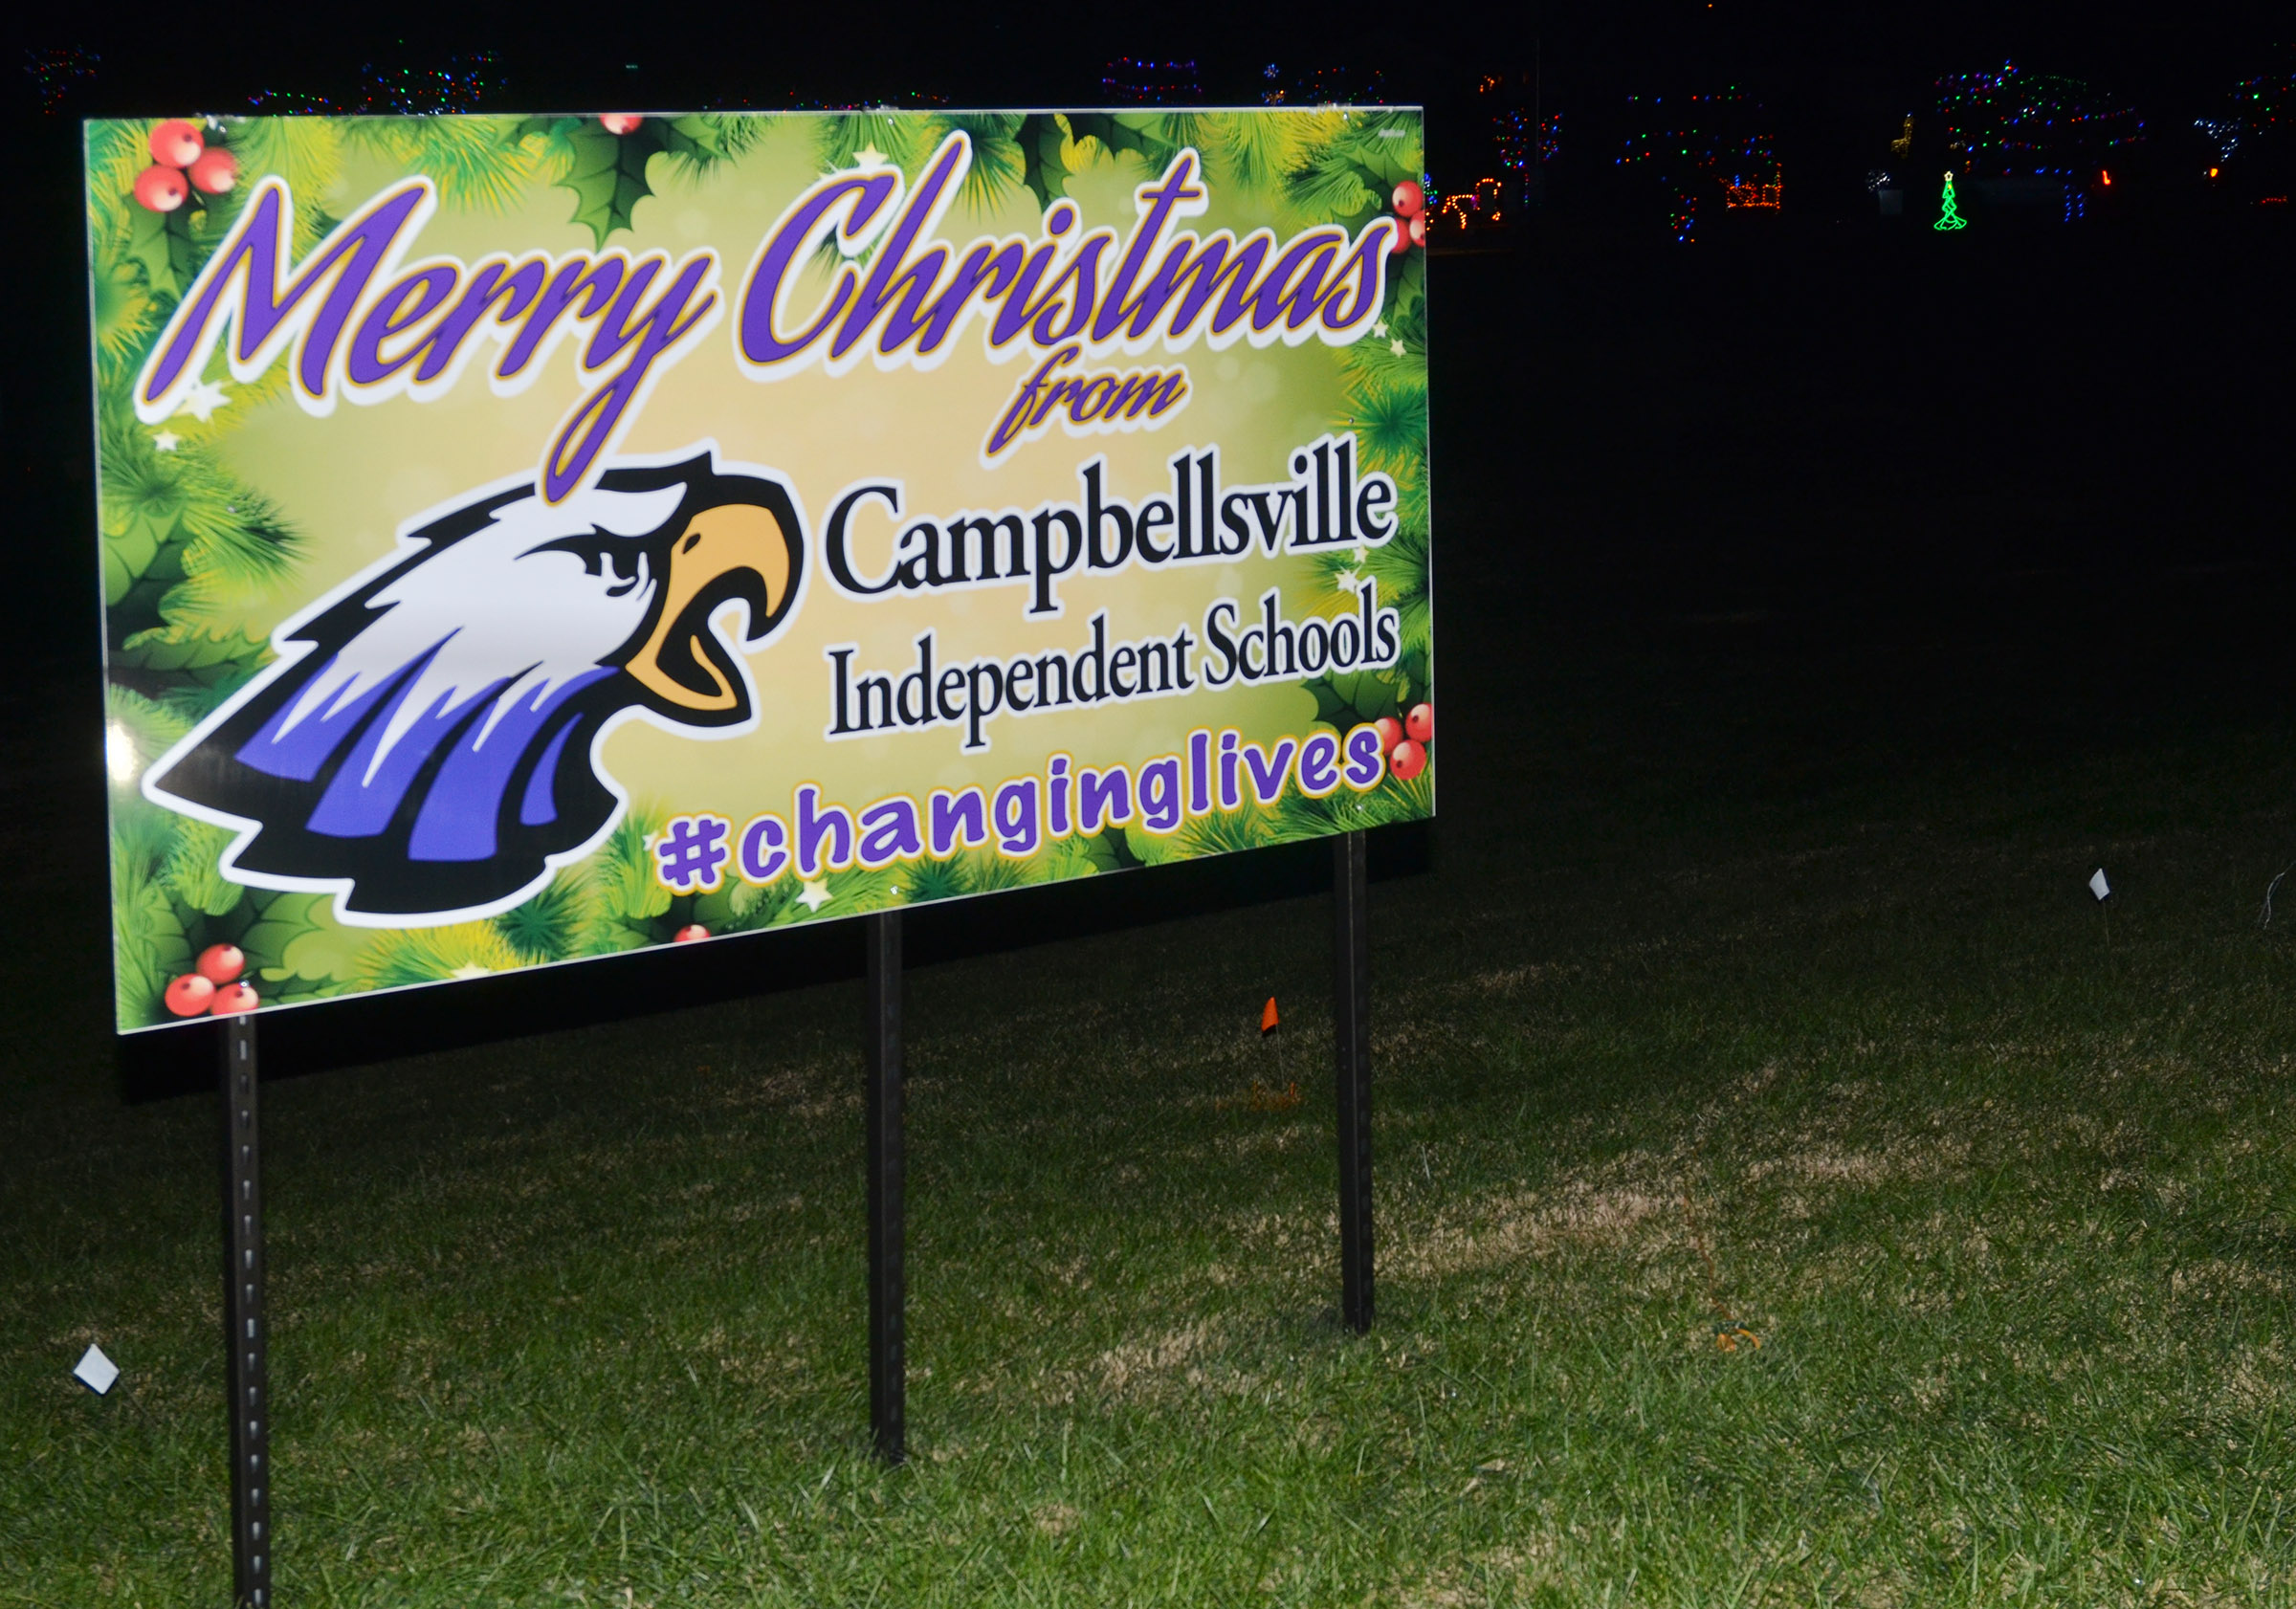 Campbellsville Independent Schools is spreading Christmas wishes to the Campbellsville and Taylor County community by displaying this message in Miller Park.